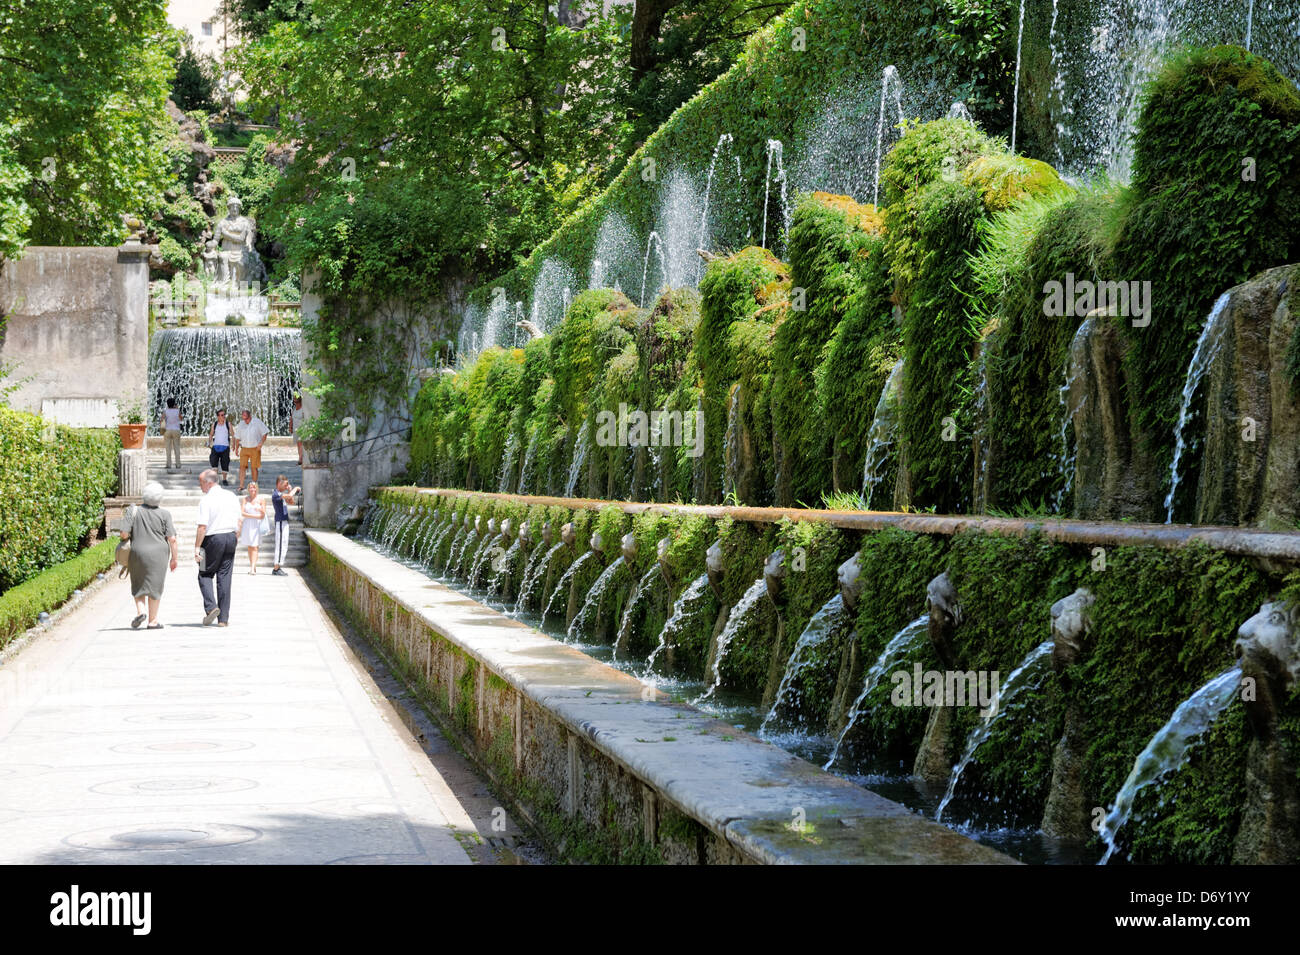 History Of Tivoli Gardens Italy Villa D Este Tivoli Italy View Along The Avenue Of The